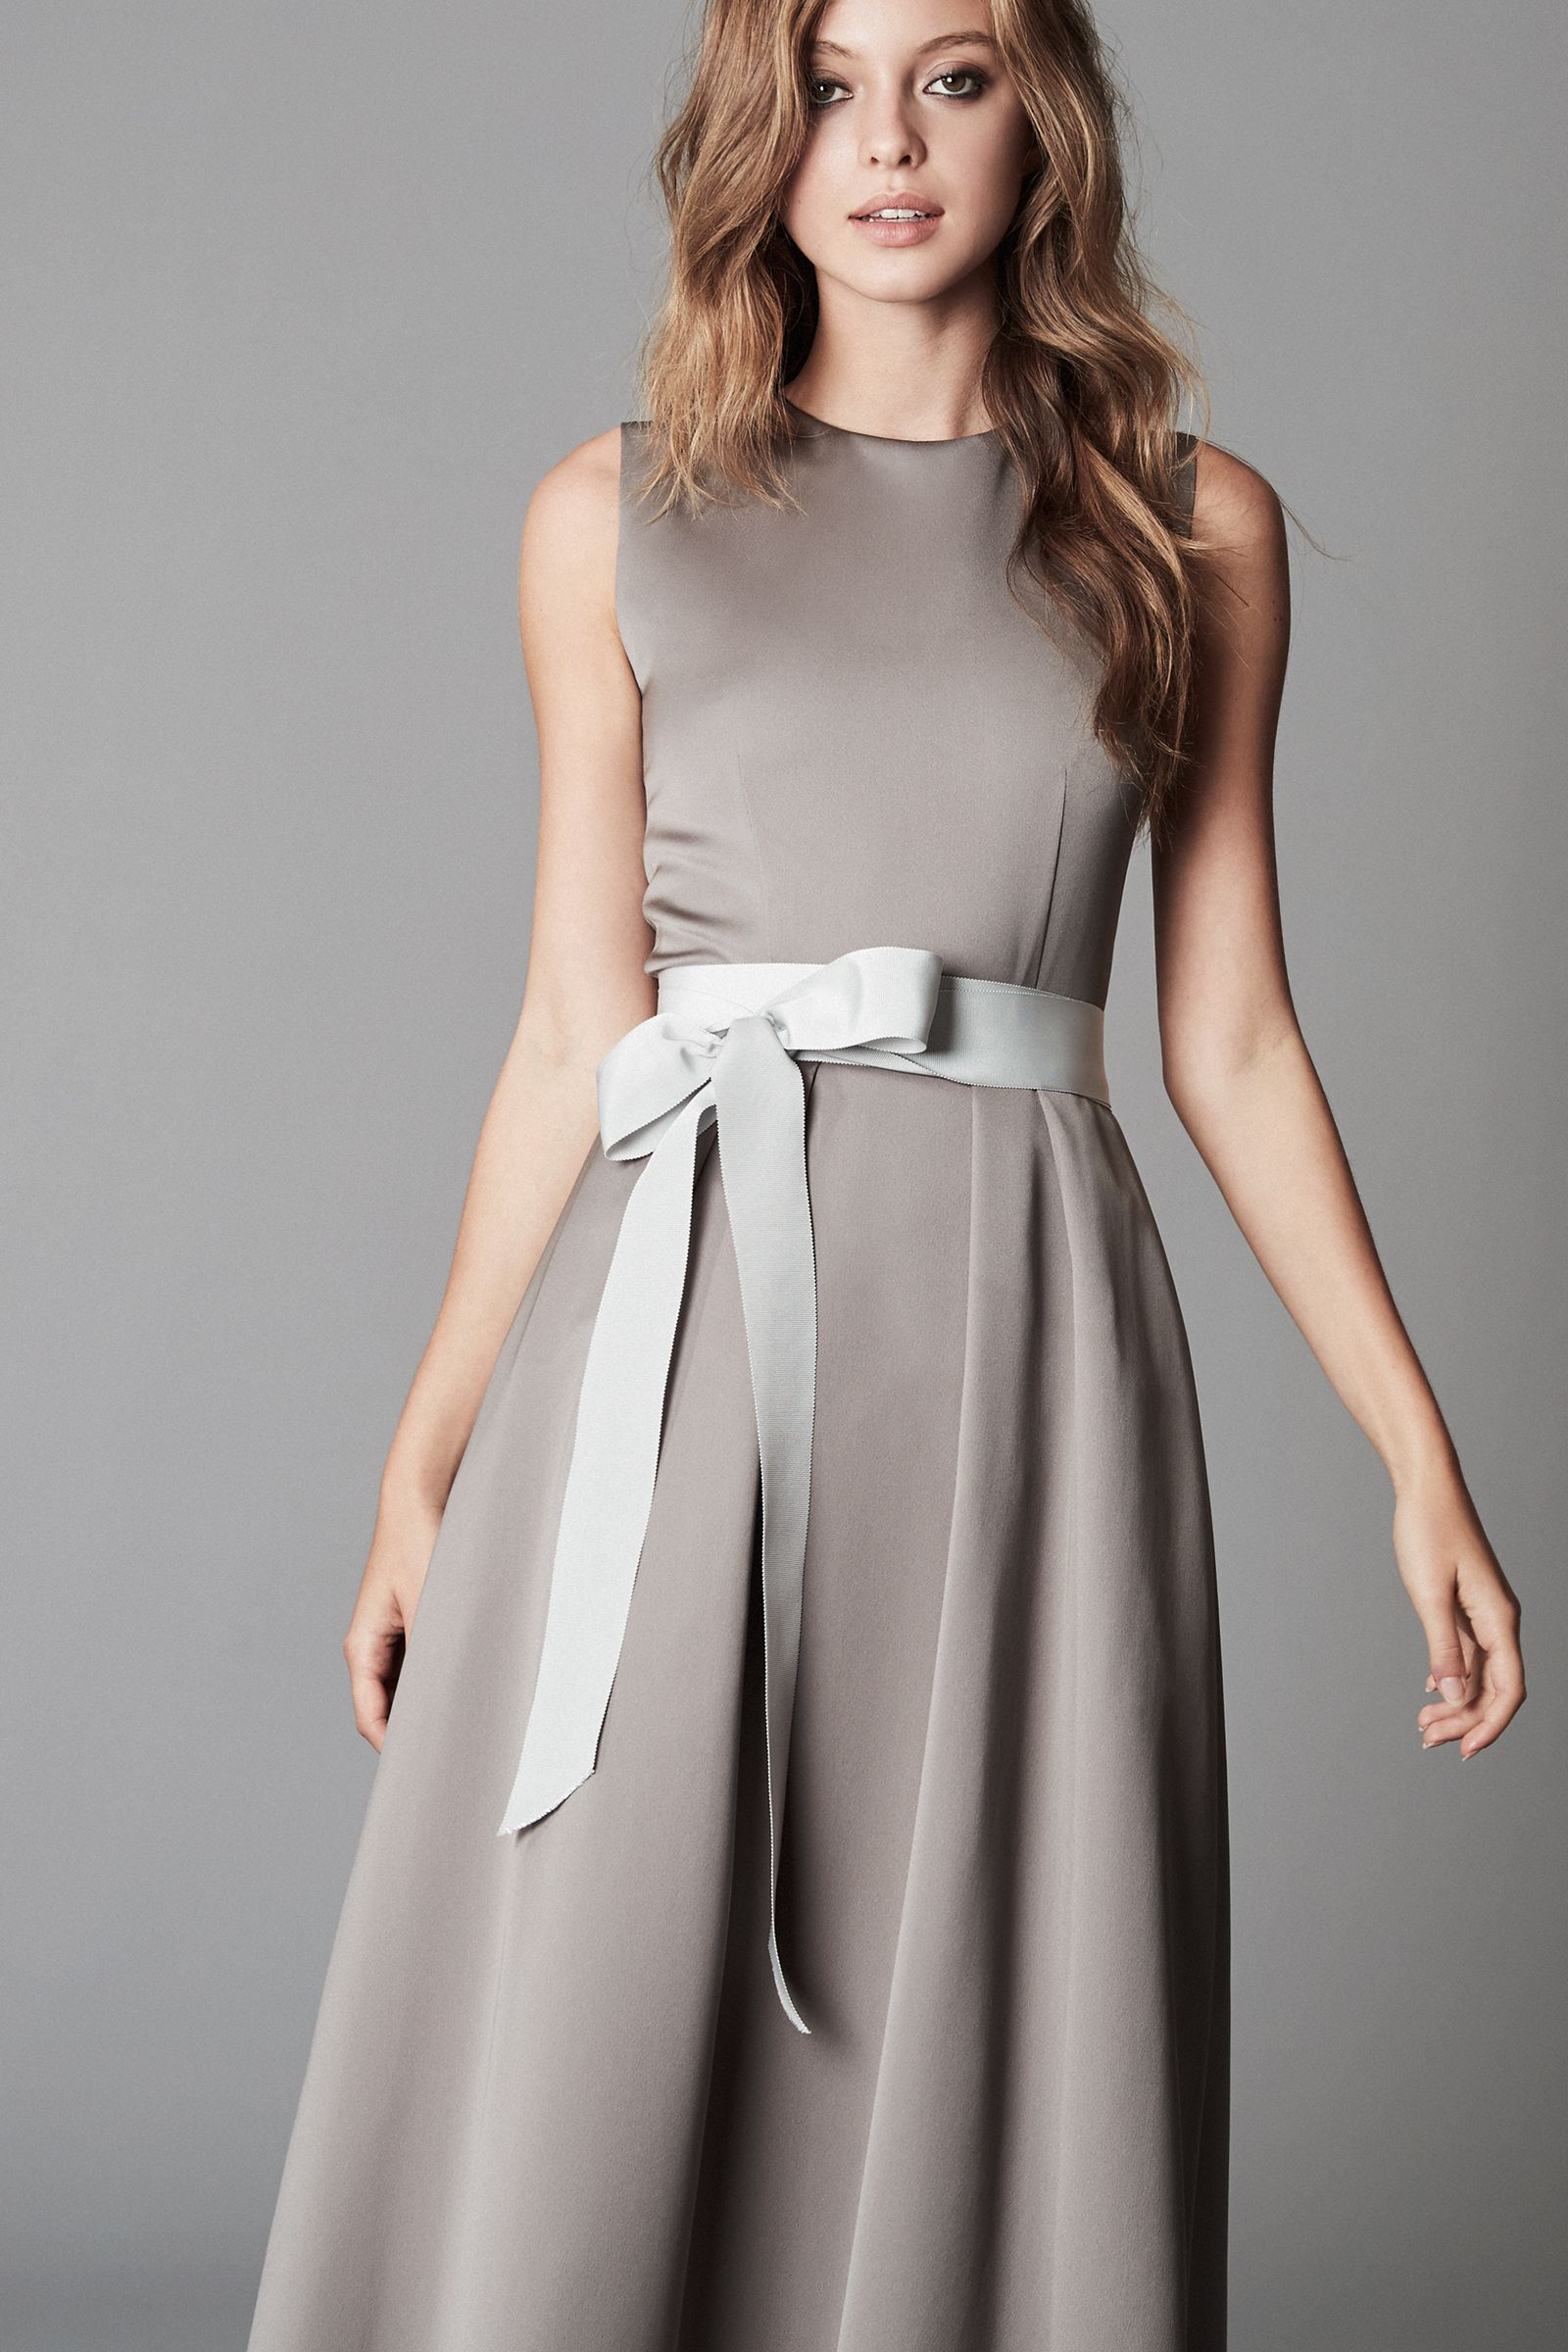 Ribbon belt - dress - anthrazit - bridesmaid dress - grey dress